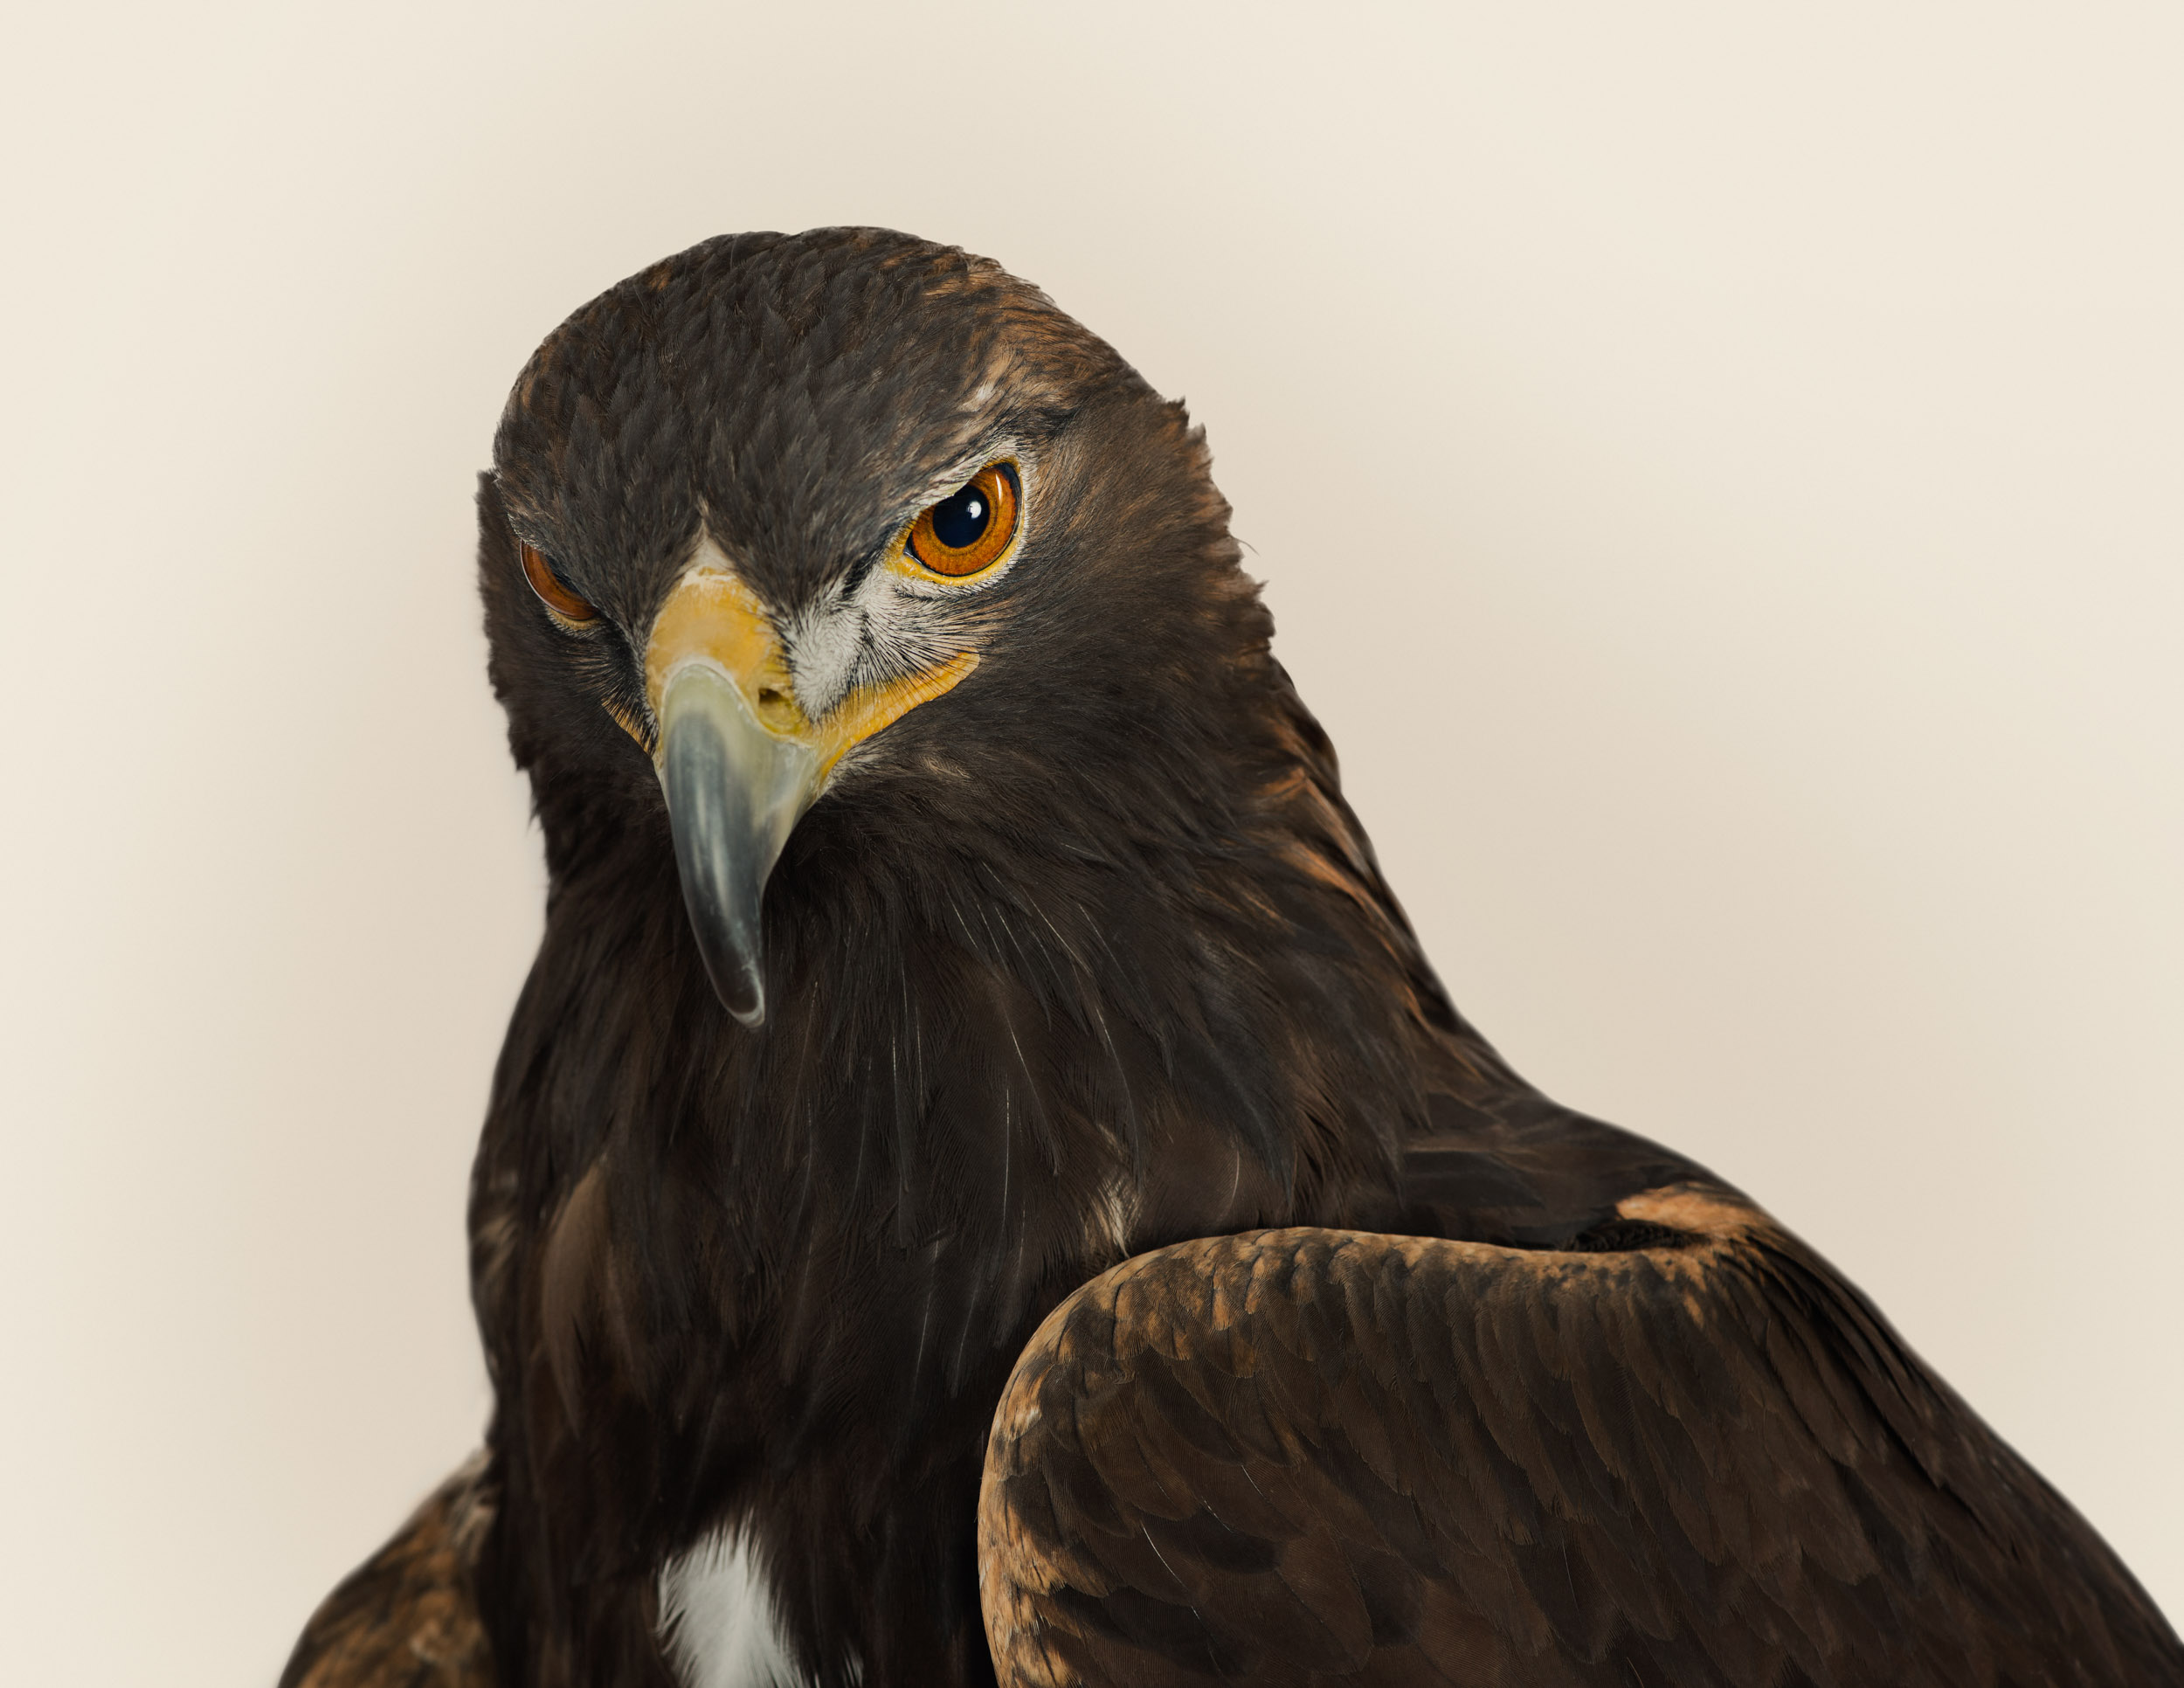 Aquila chrysaetos (golden eagle)